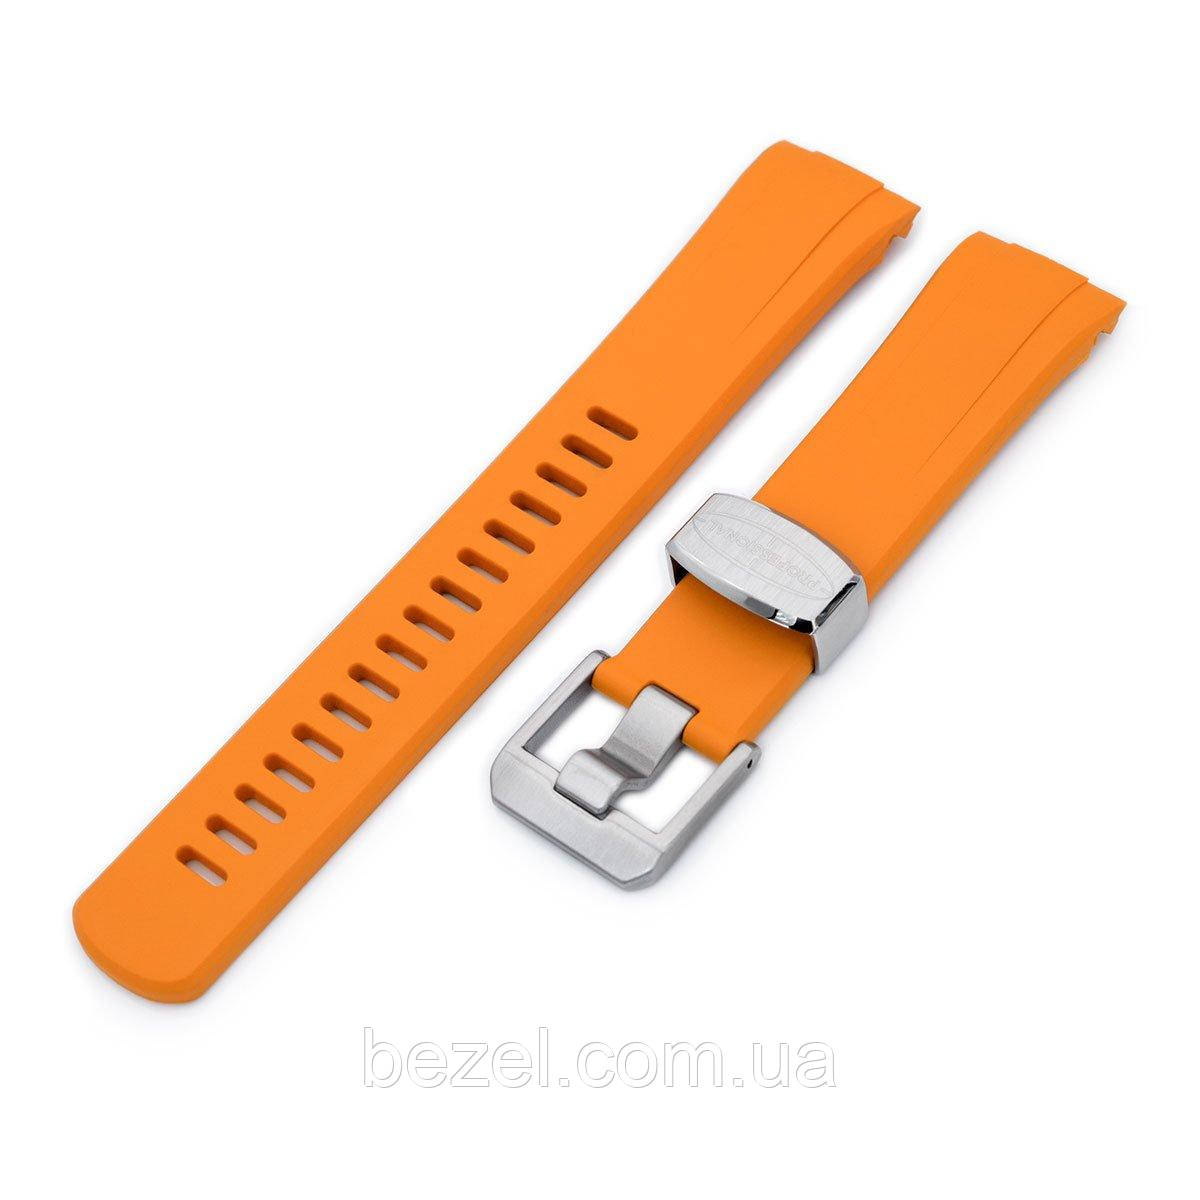 22mm Crafter Blue - Orange Rubber Curved Lug Watch Band for Seiko Turtle SRP777